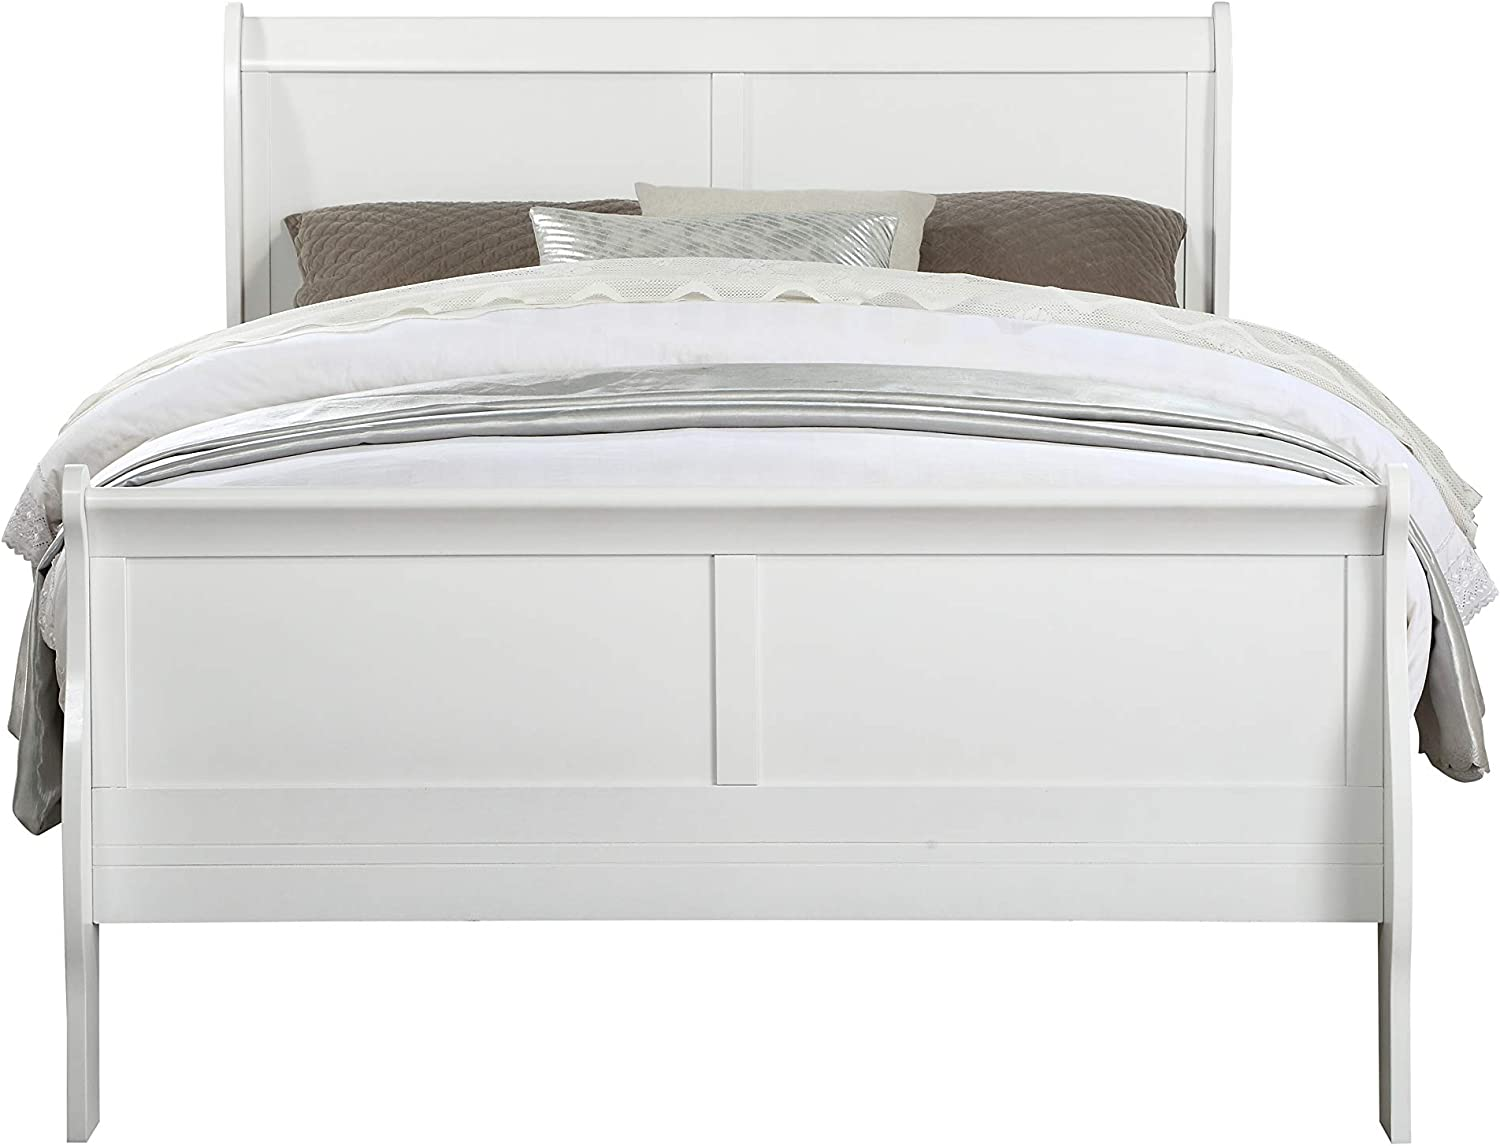 ACME Furniture Louis Philippe Full Bed, White